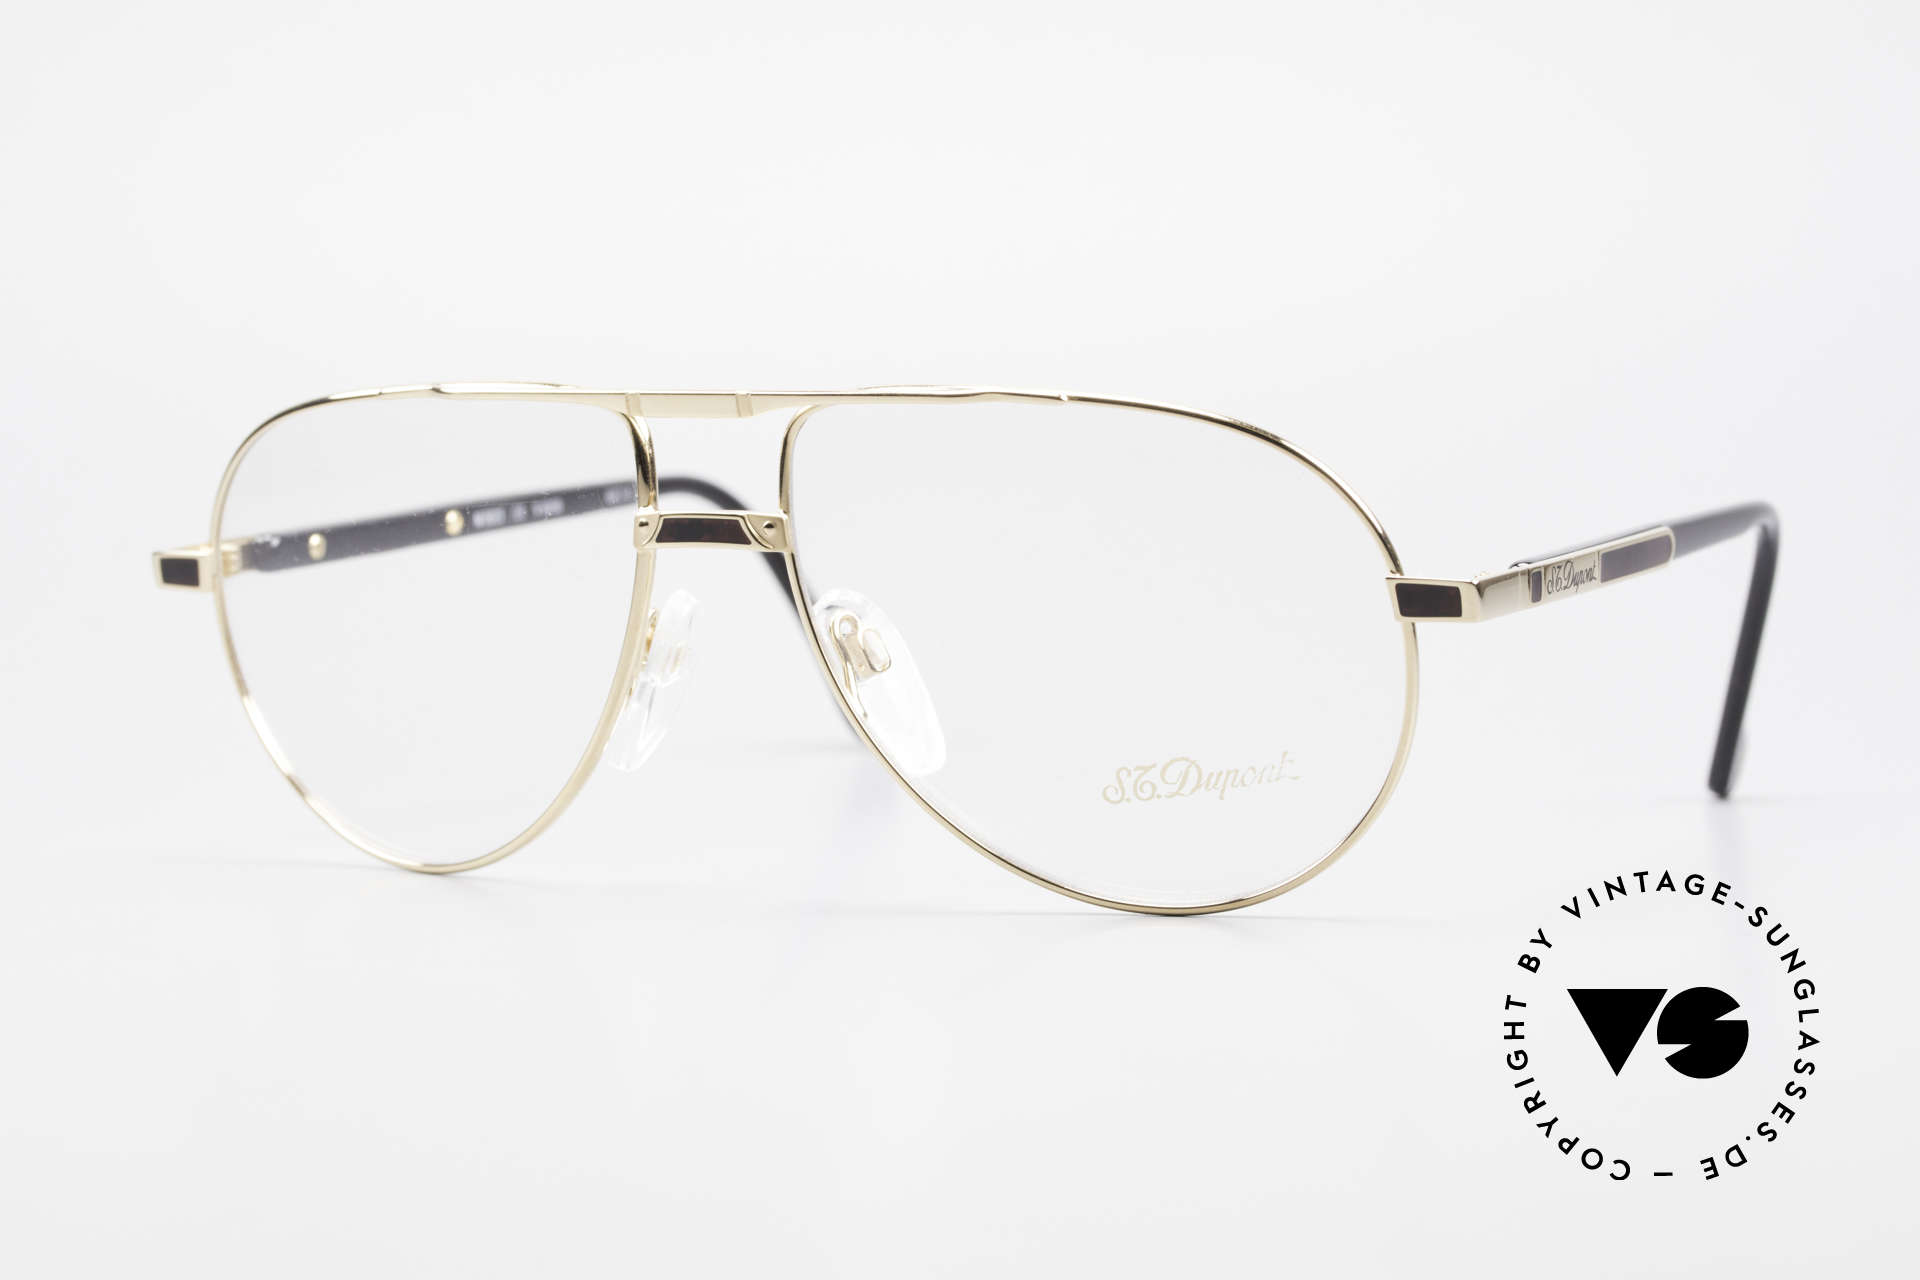 S.T. Dupont D023 Luxury Aviator Frame For Men, very exclusive S.T. DUPONT luxury glasses, size 60°15, Made for Men